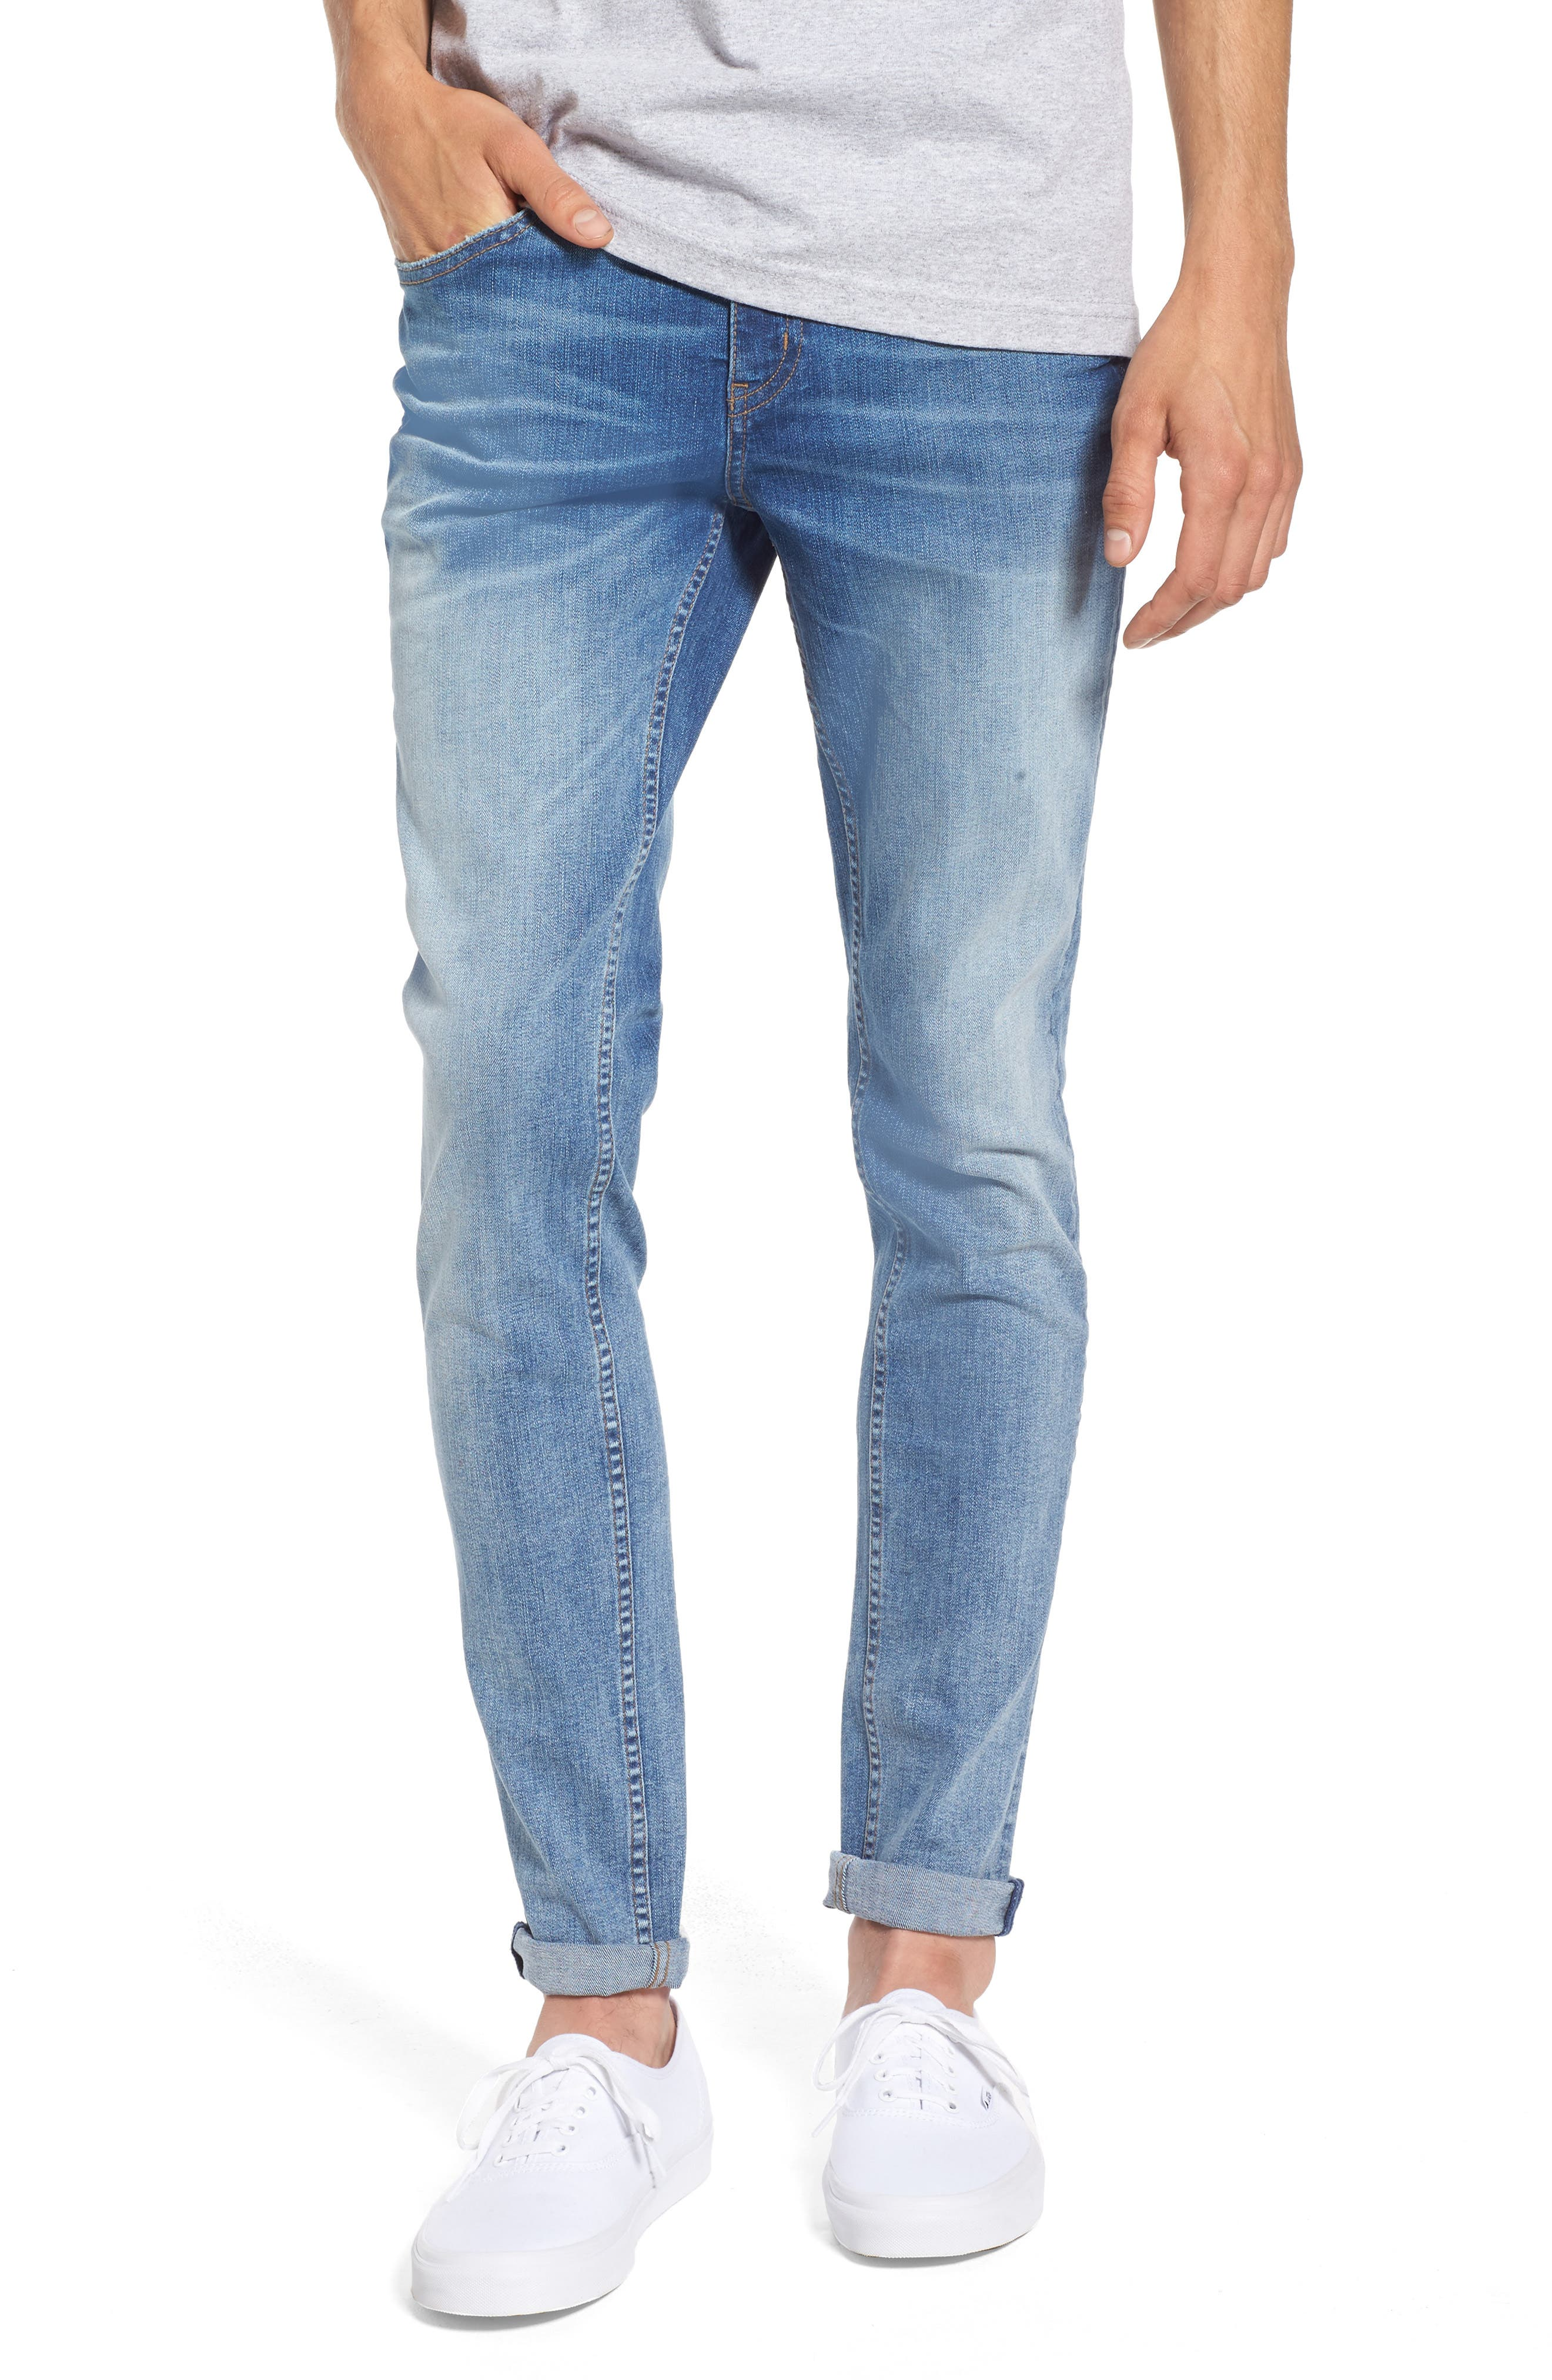 Tight Skinny Fit Jeans,                             Main thumbnail 1, color,                             428